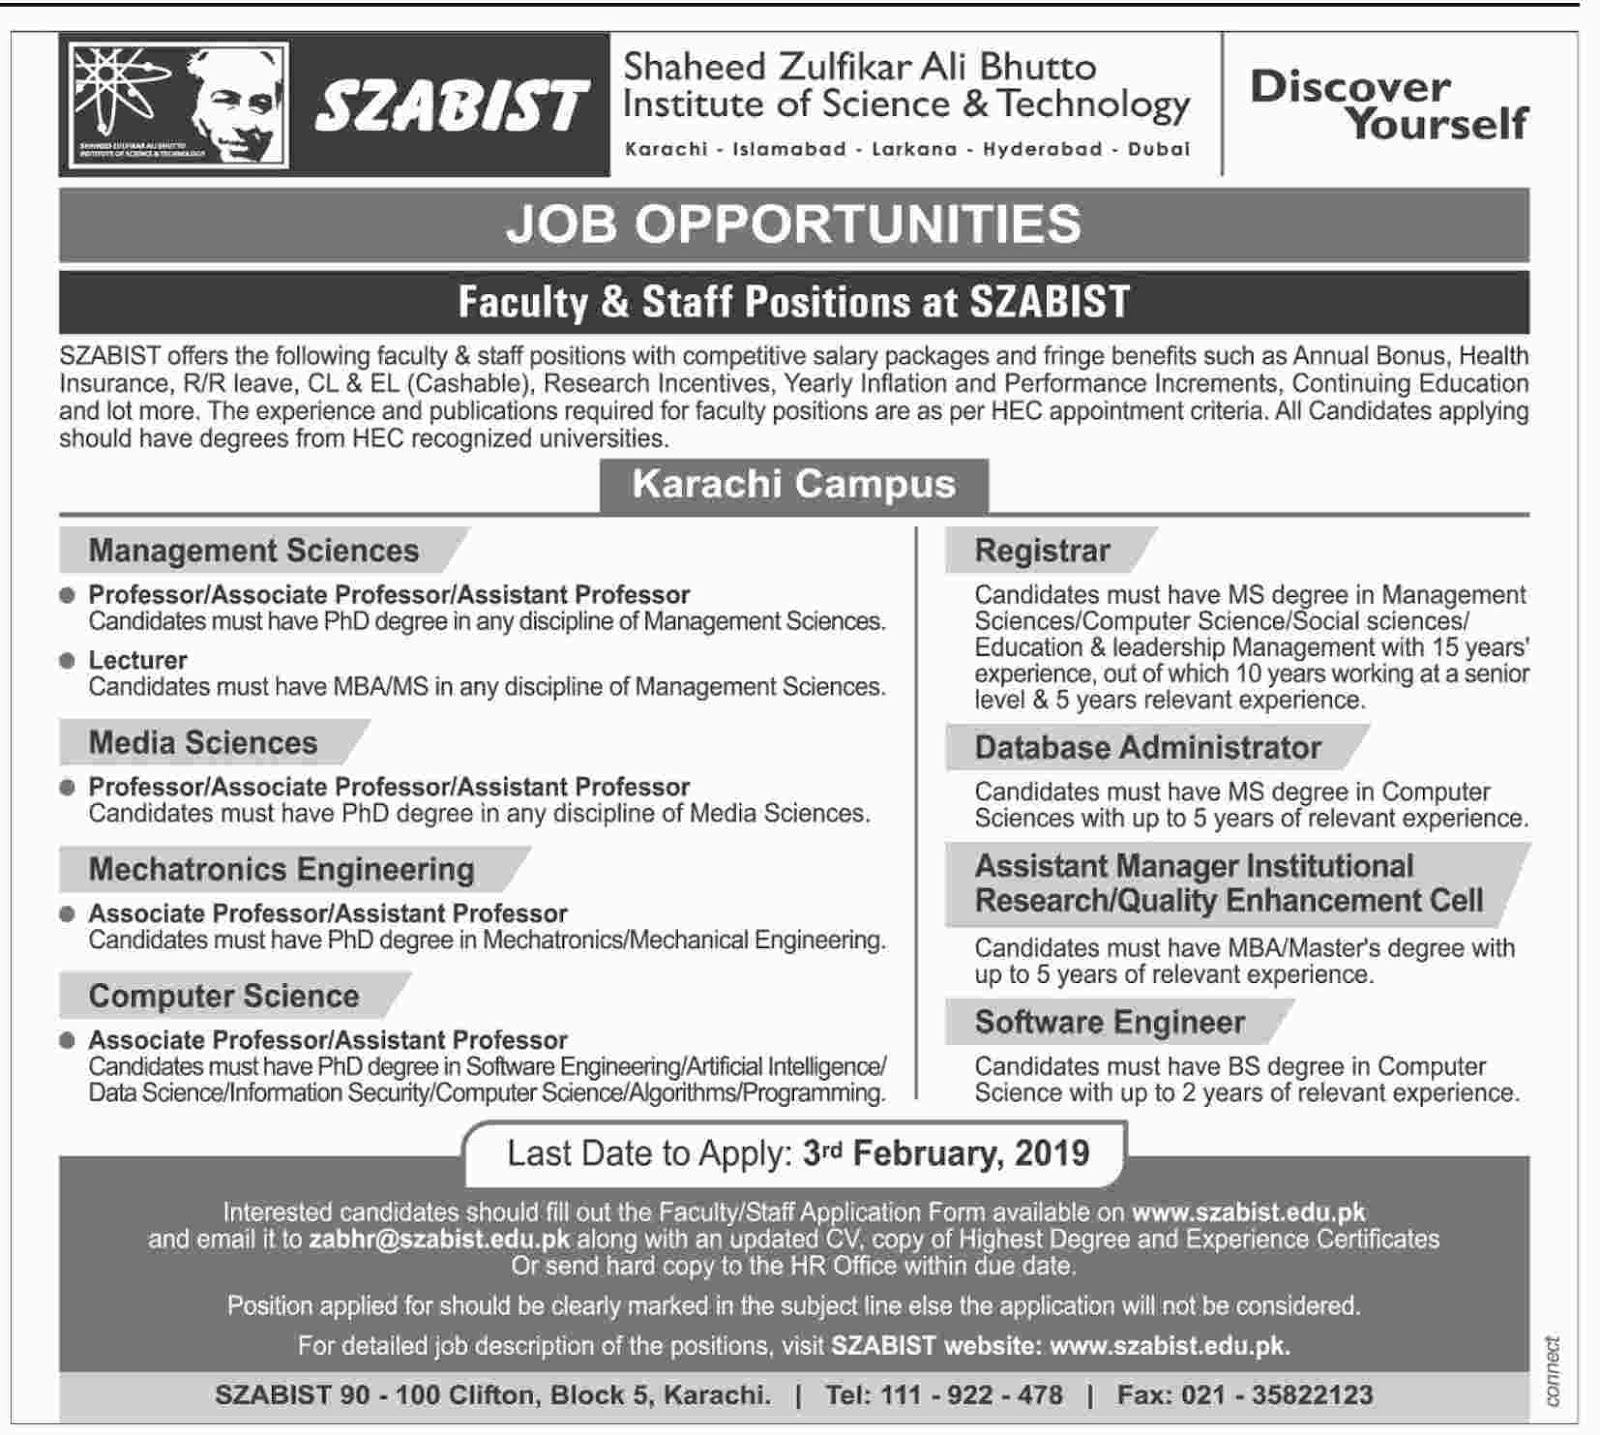 Shaheed Zulfikar Ali Bhutto Institute Of Science And Technology Announced Jobs in Karachi